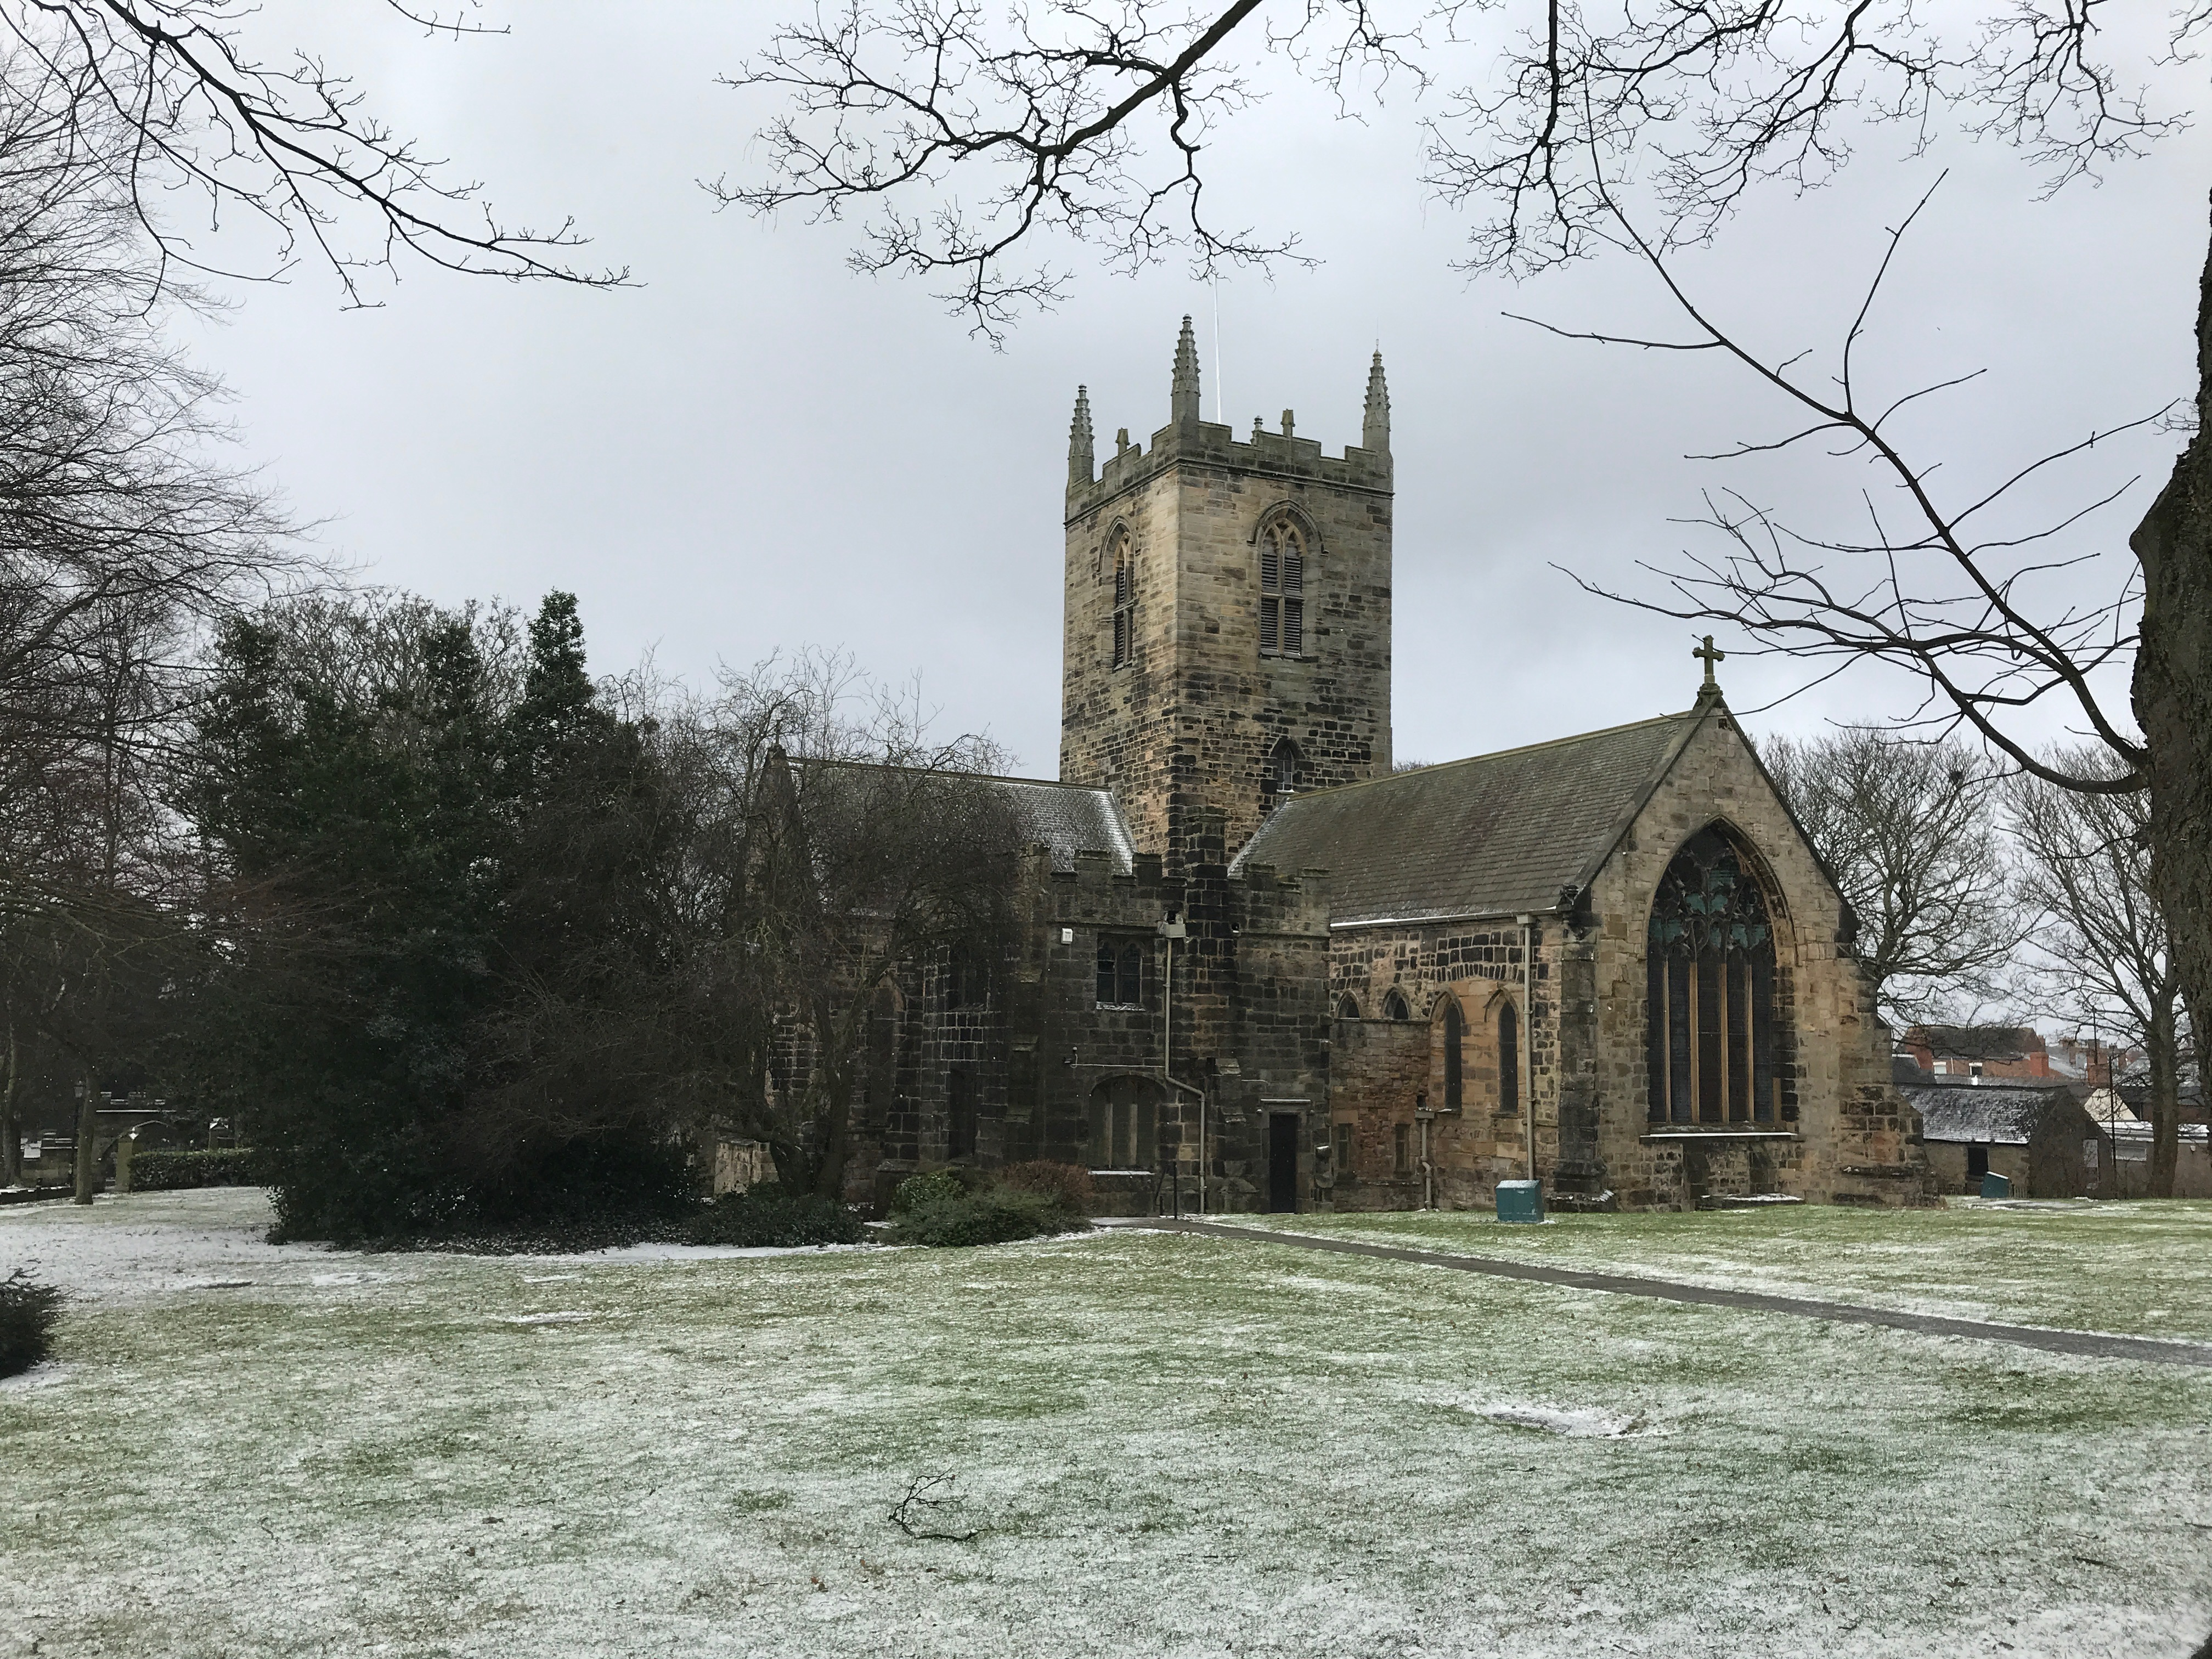 St Michael's and All Angels, Houghton le Spring